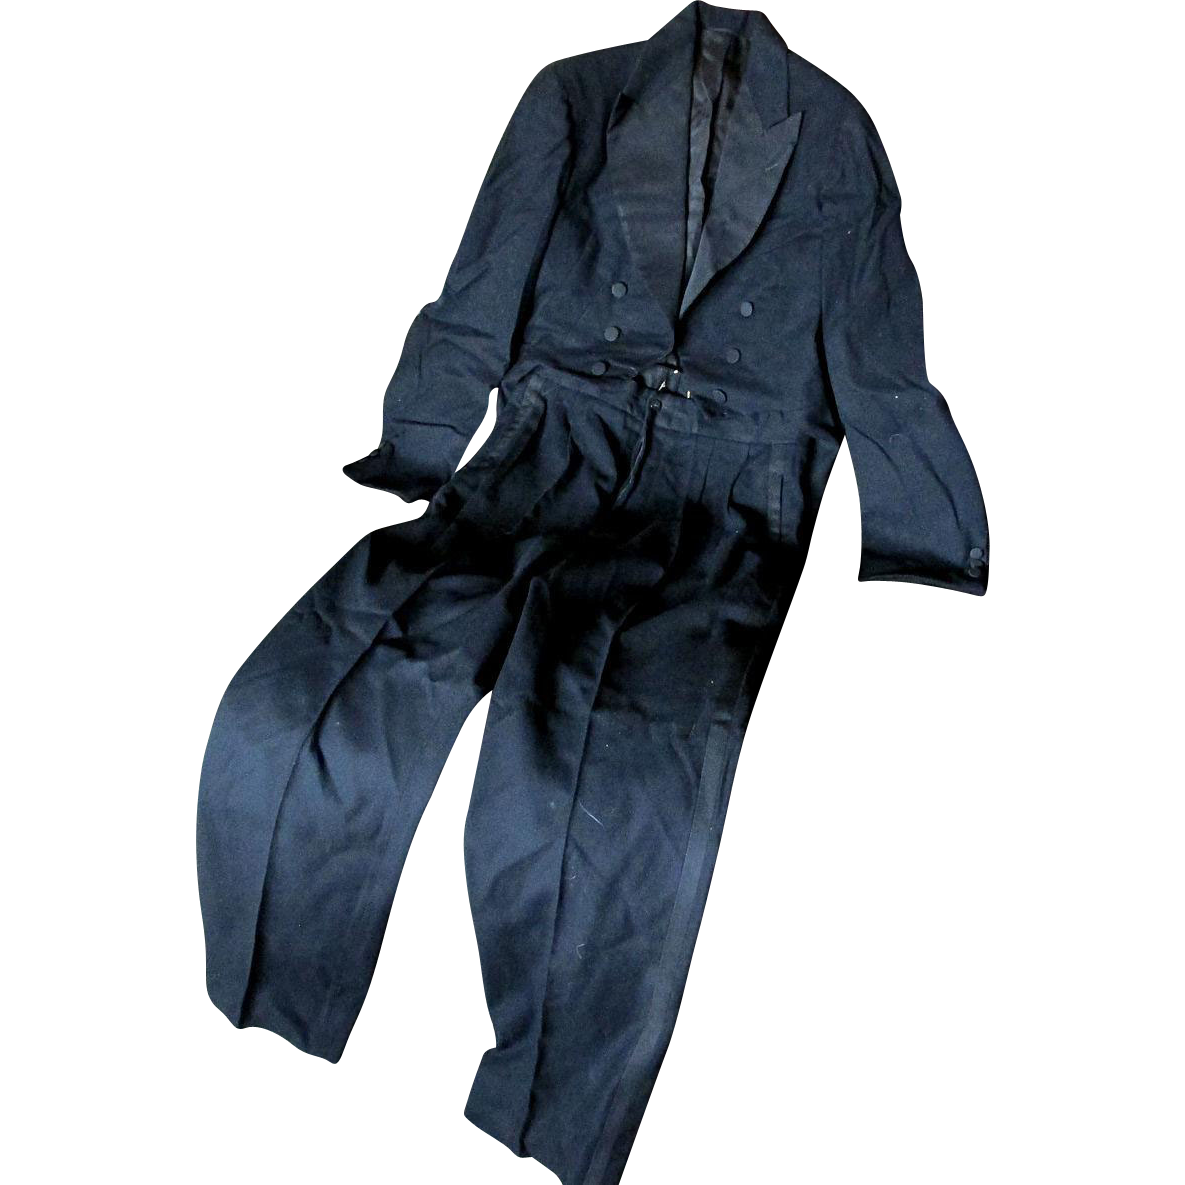 c1930s Gentlemans Tuxedo with Tails, Suit with Pants